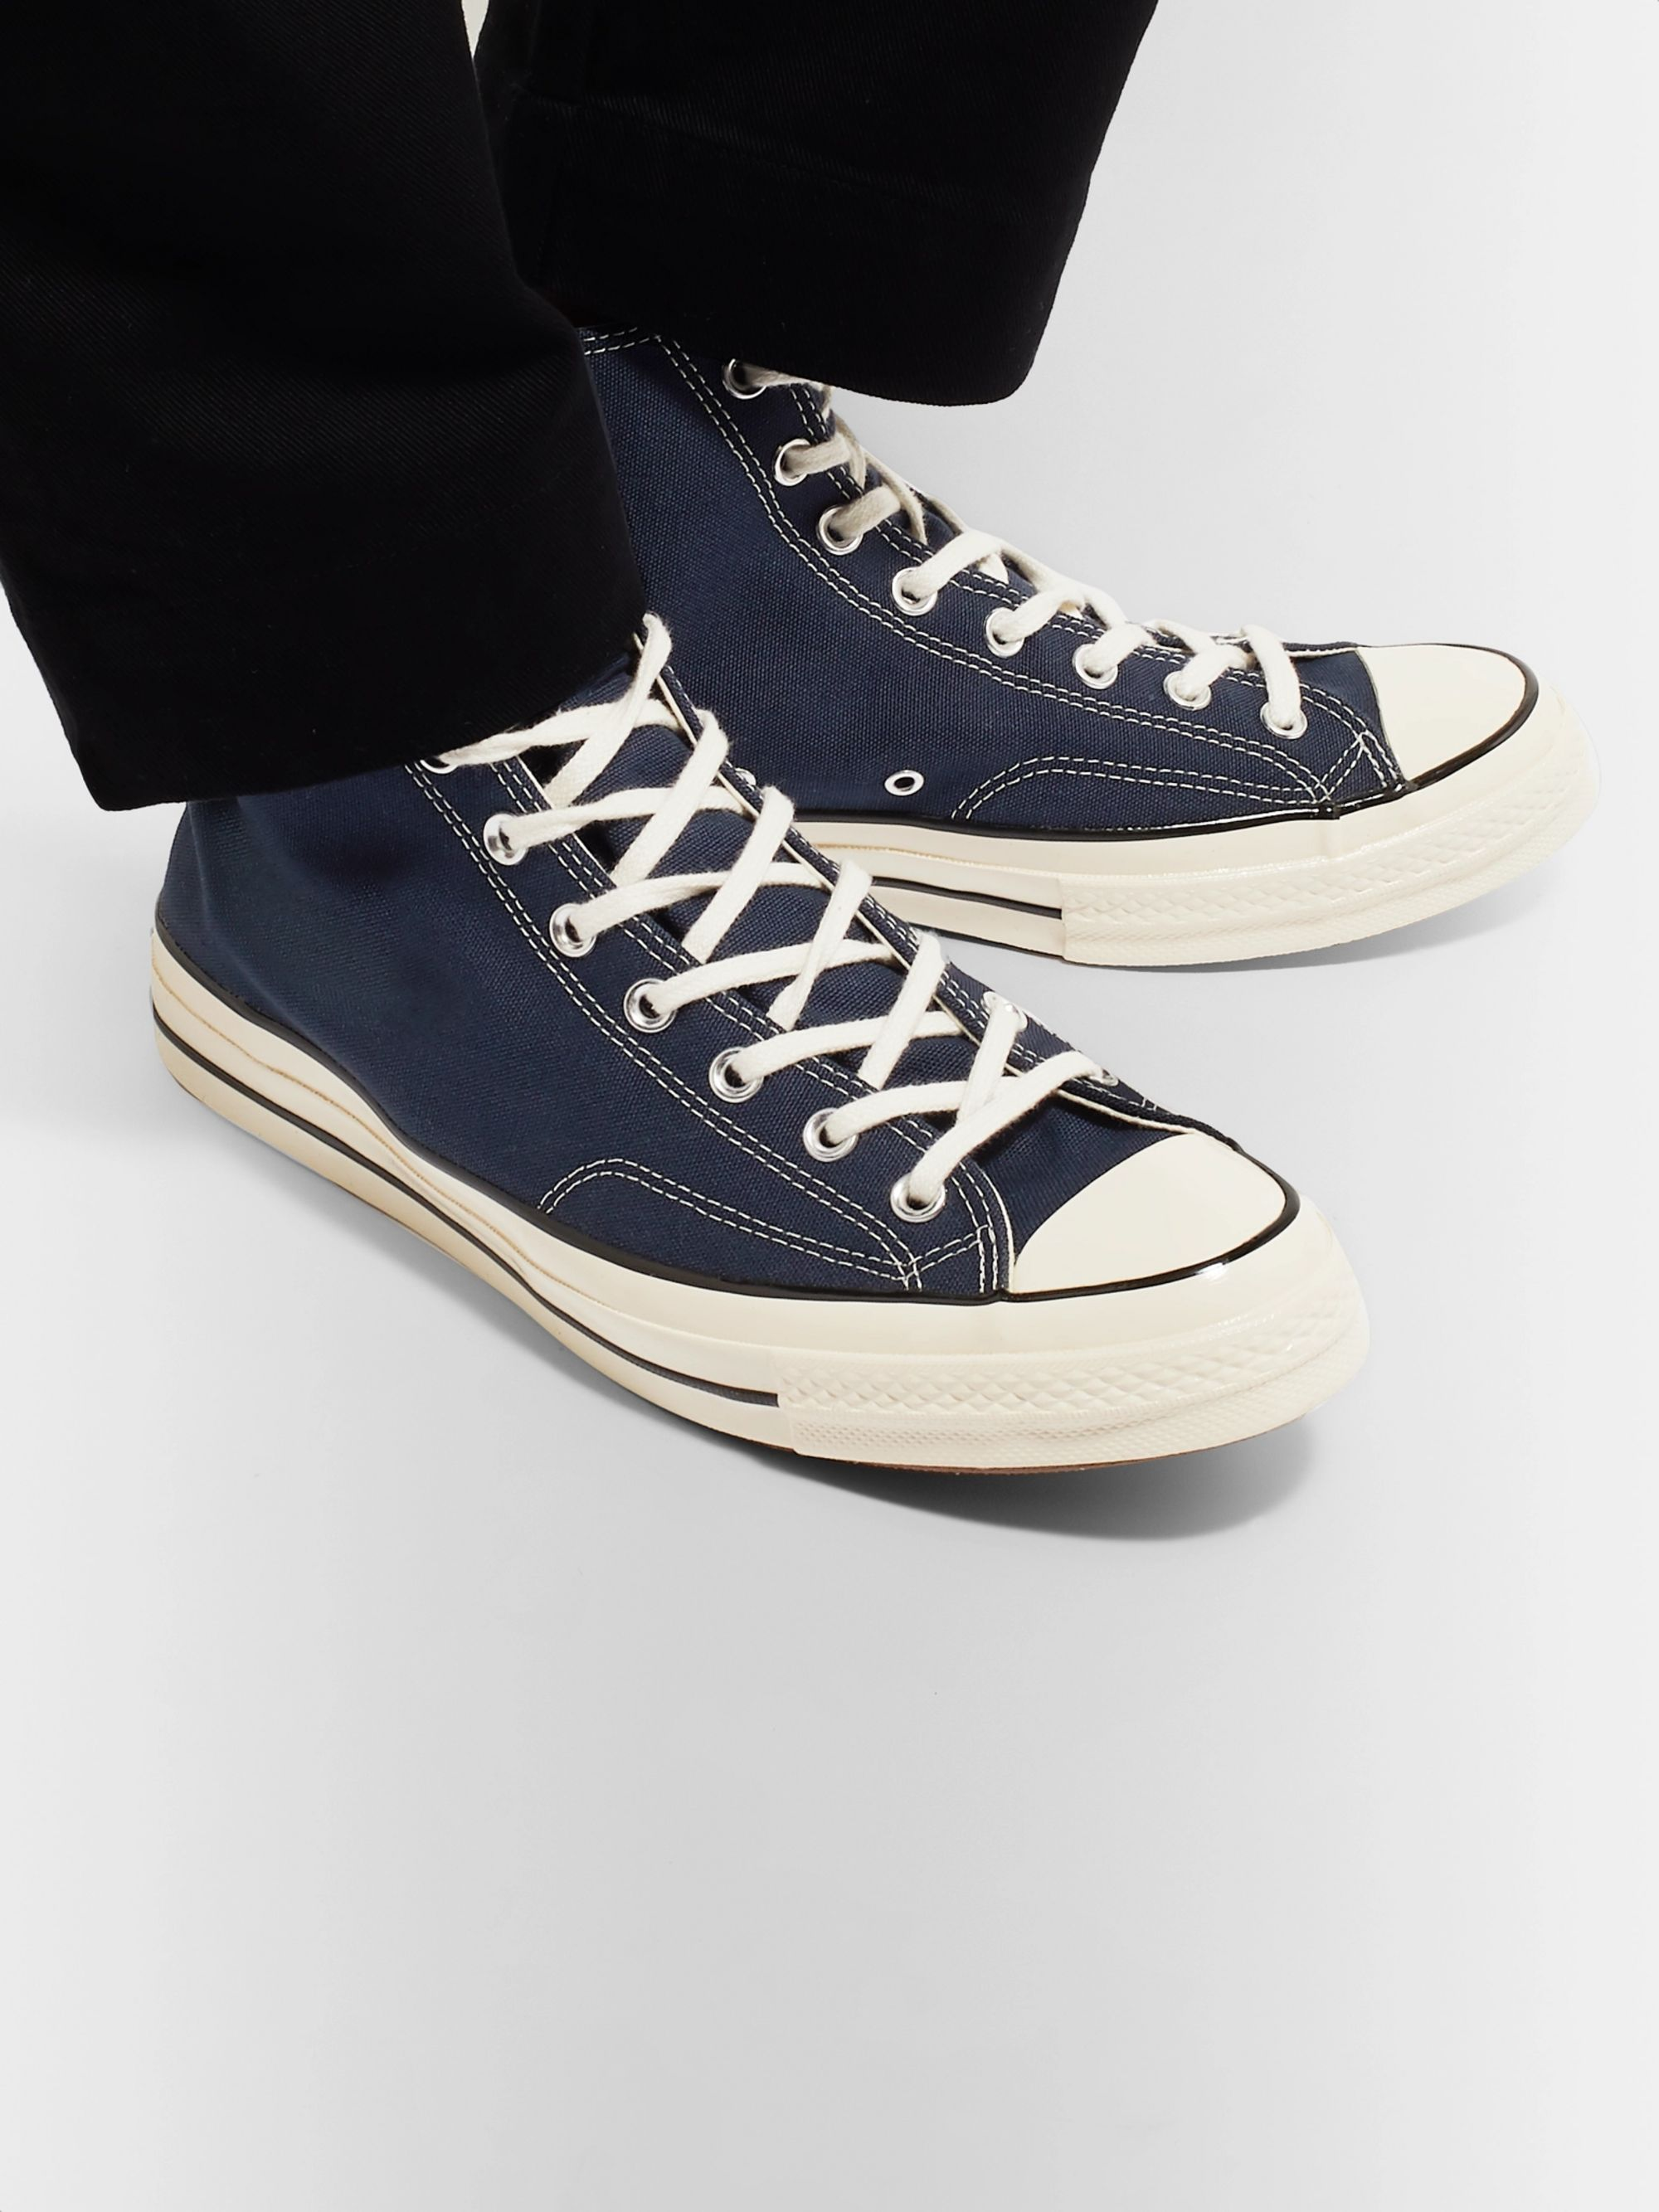 Chuck 70 Canvas High Top Sneakers